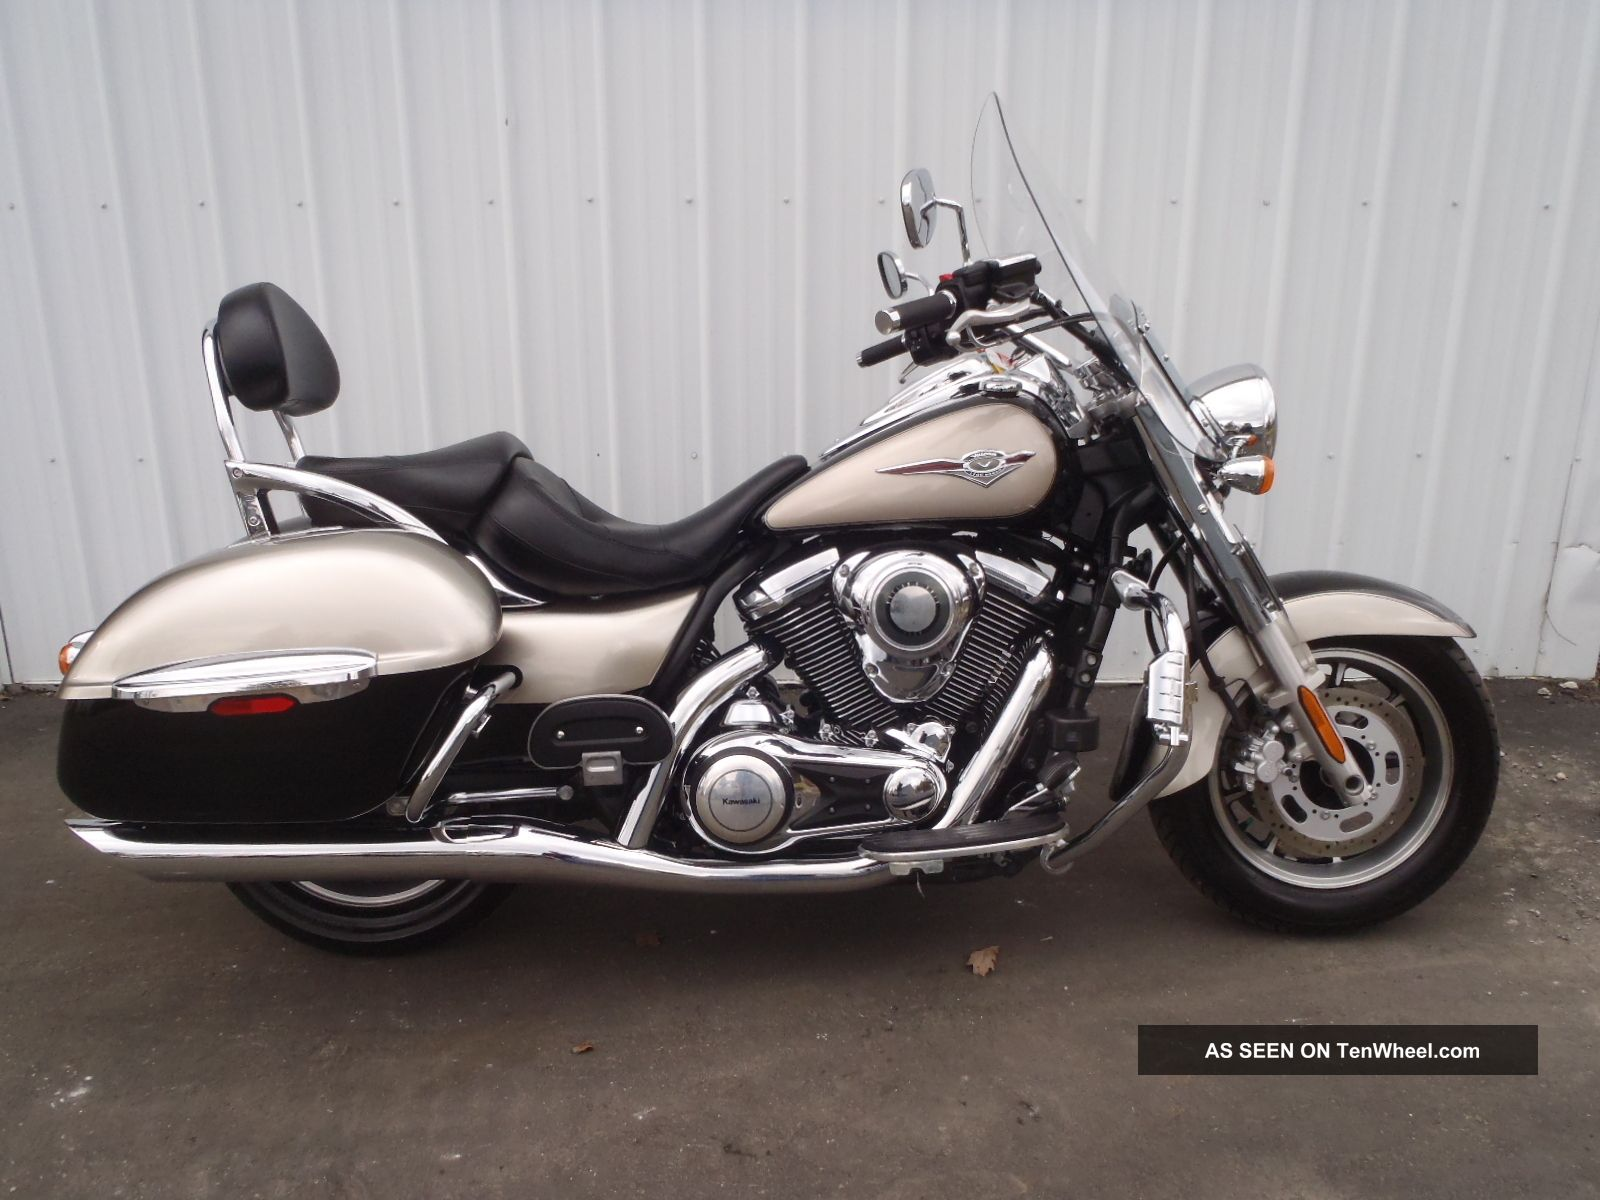 Watch further Kawasaki Vn900 Classic besides Extreme Ape Hangers as well 2010 Chevy Nomad further Suzuki Intruder. on 2010 kawasaki vulcan 800